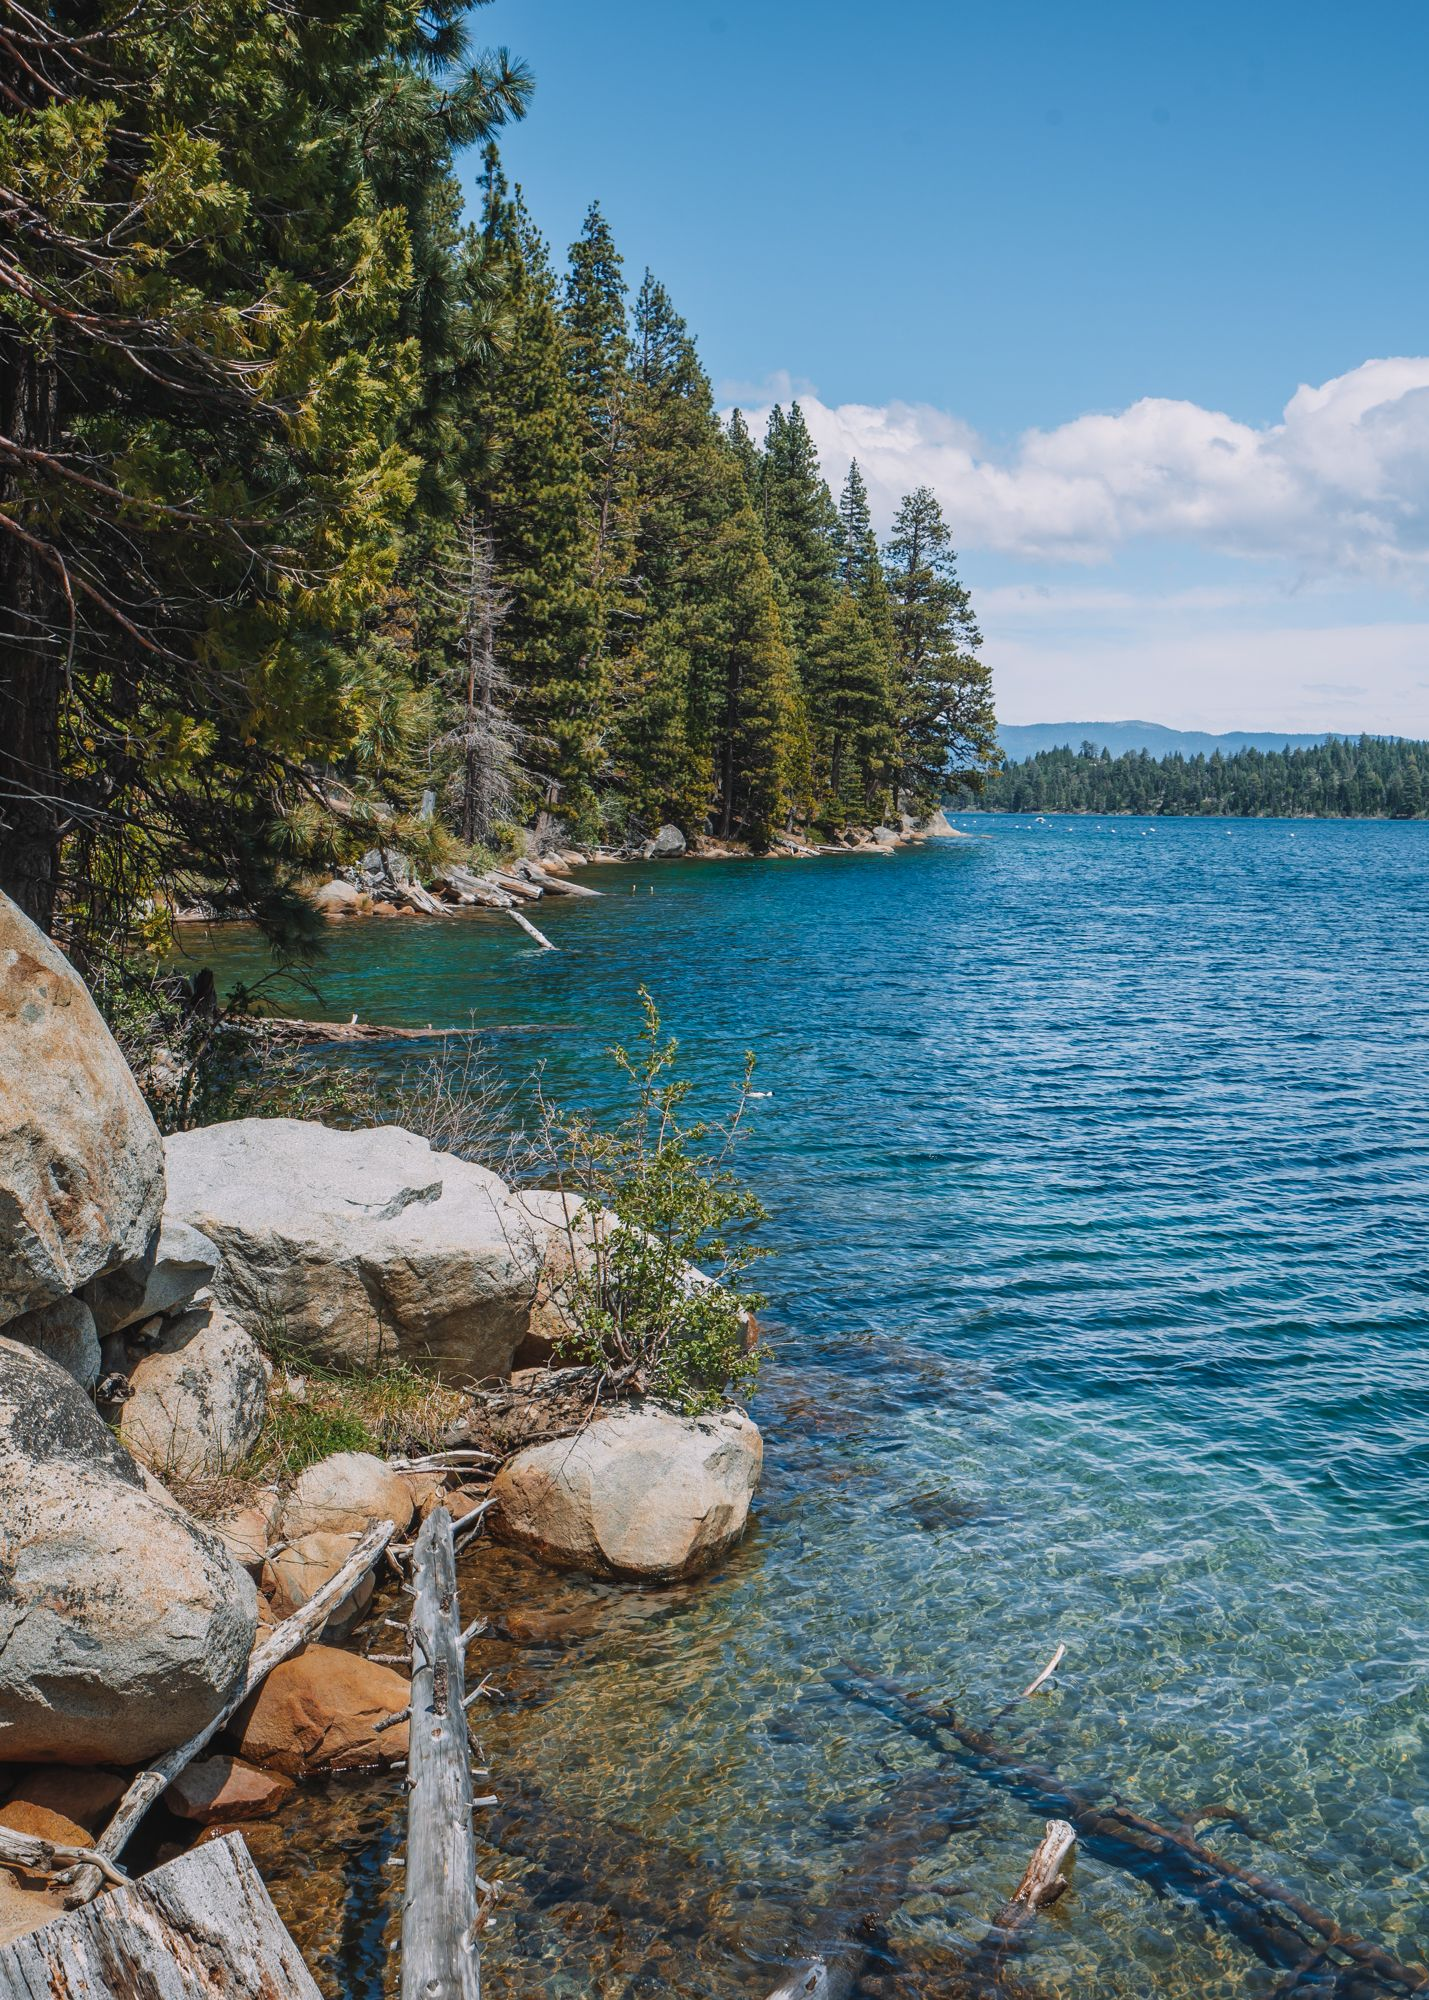 10 Amazing Things To Do At Emerald Bay State Park In Lake Tahoe #California #Tahoe #LakeTahoe #EmeraldBay